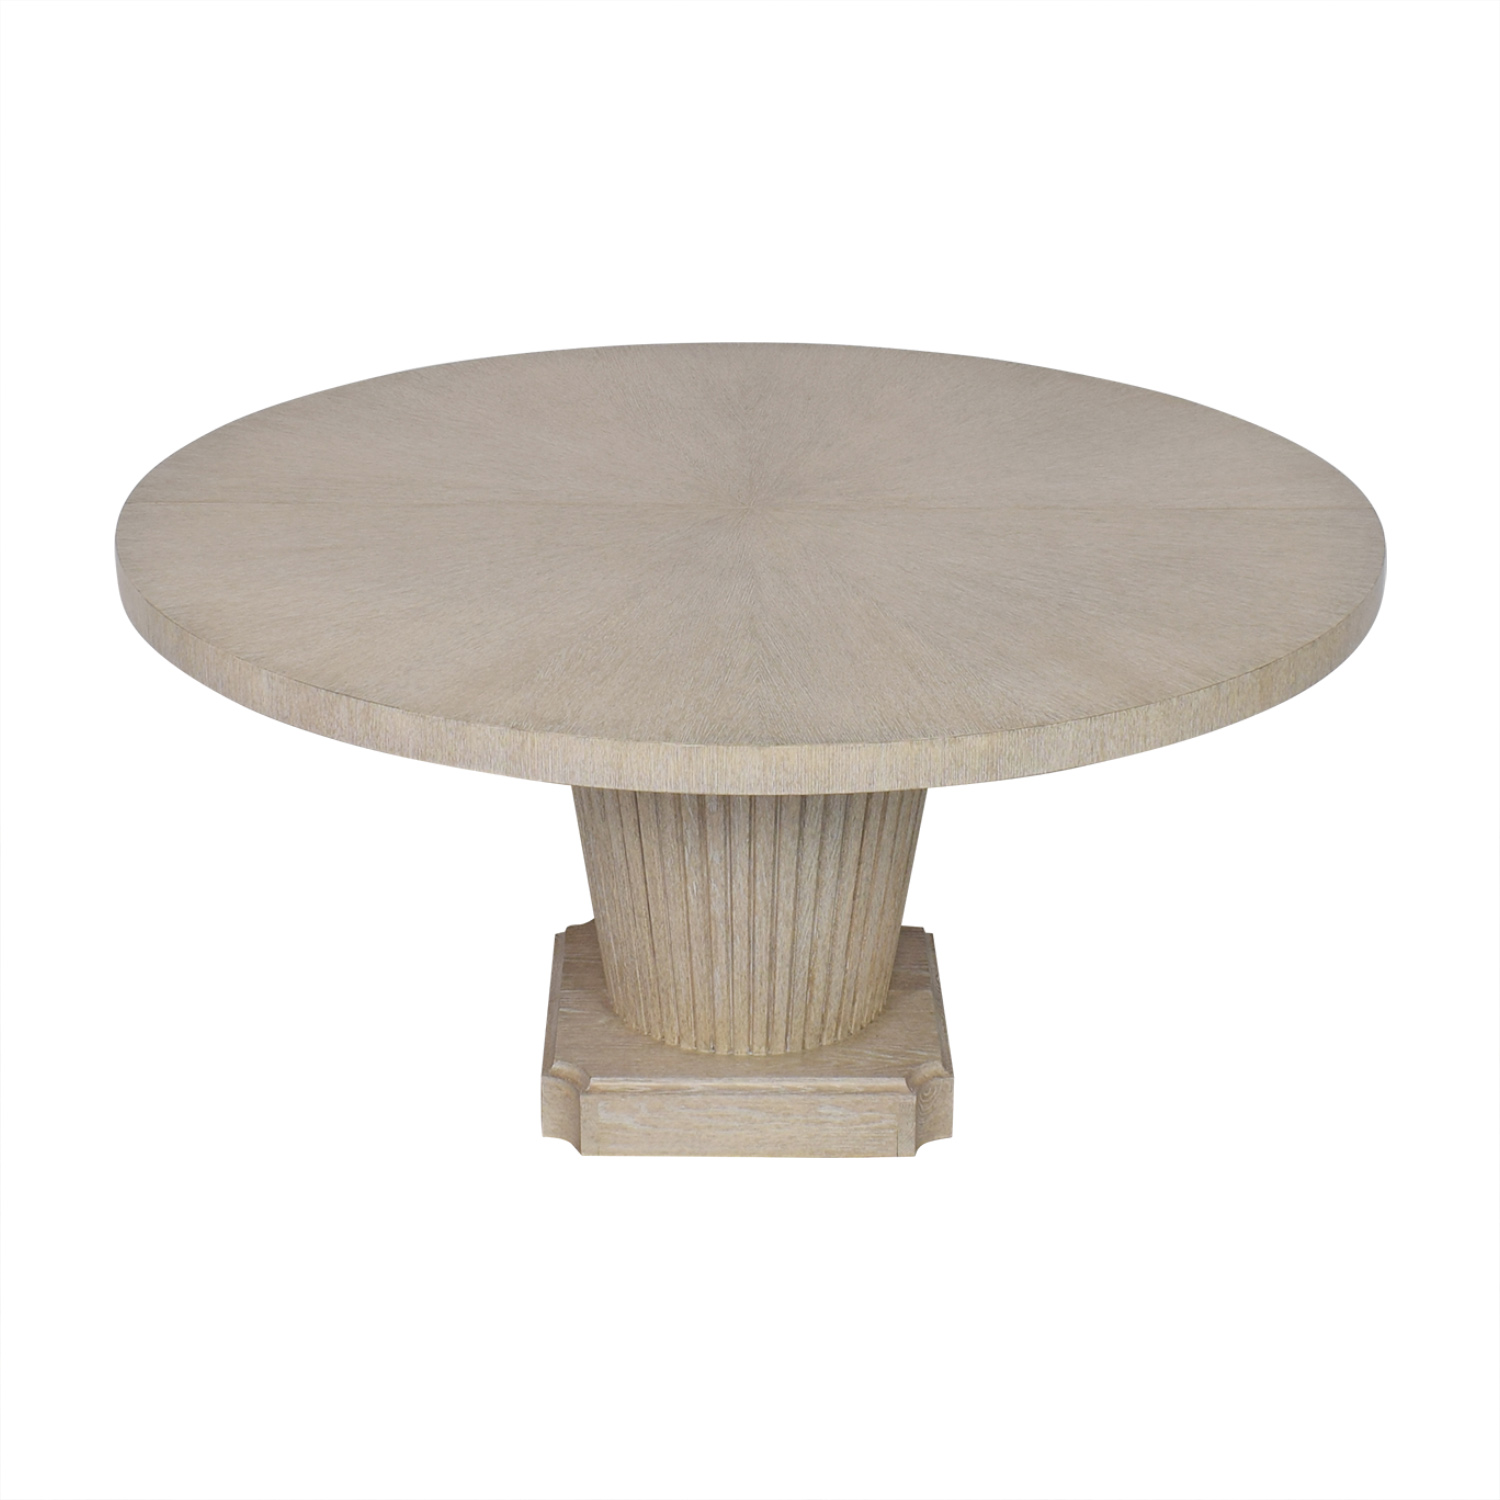 Nancy Corzine Nancy Corzine Sherman Dining Table on sale